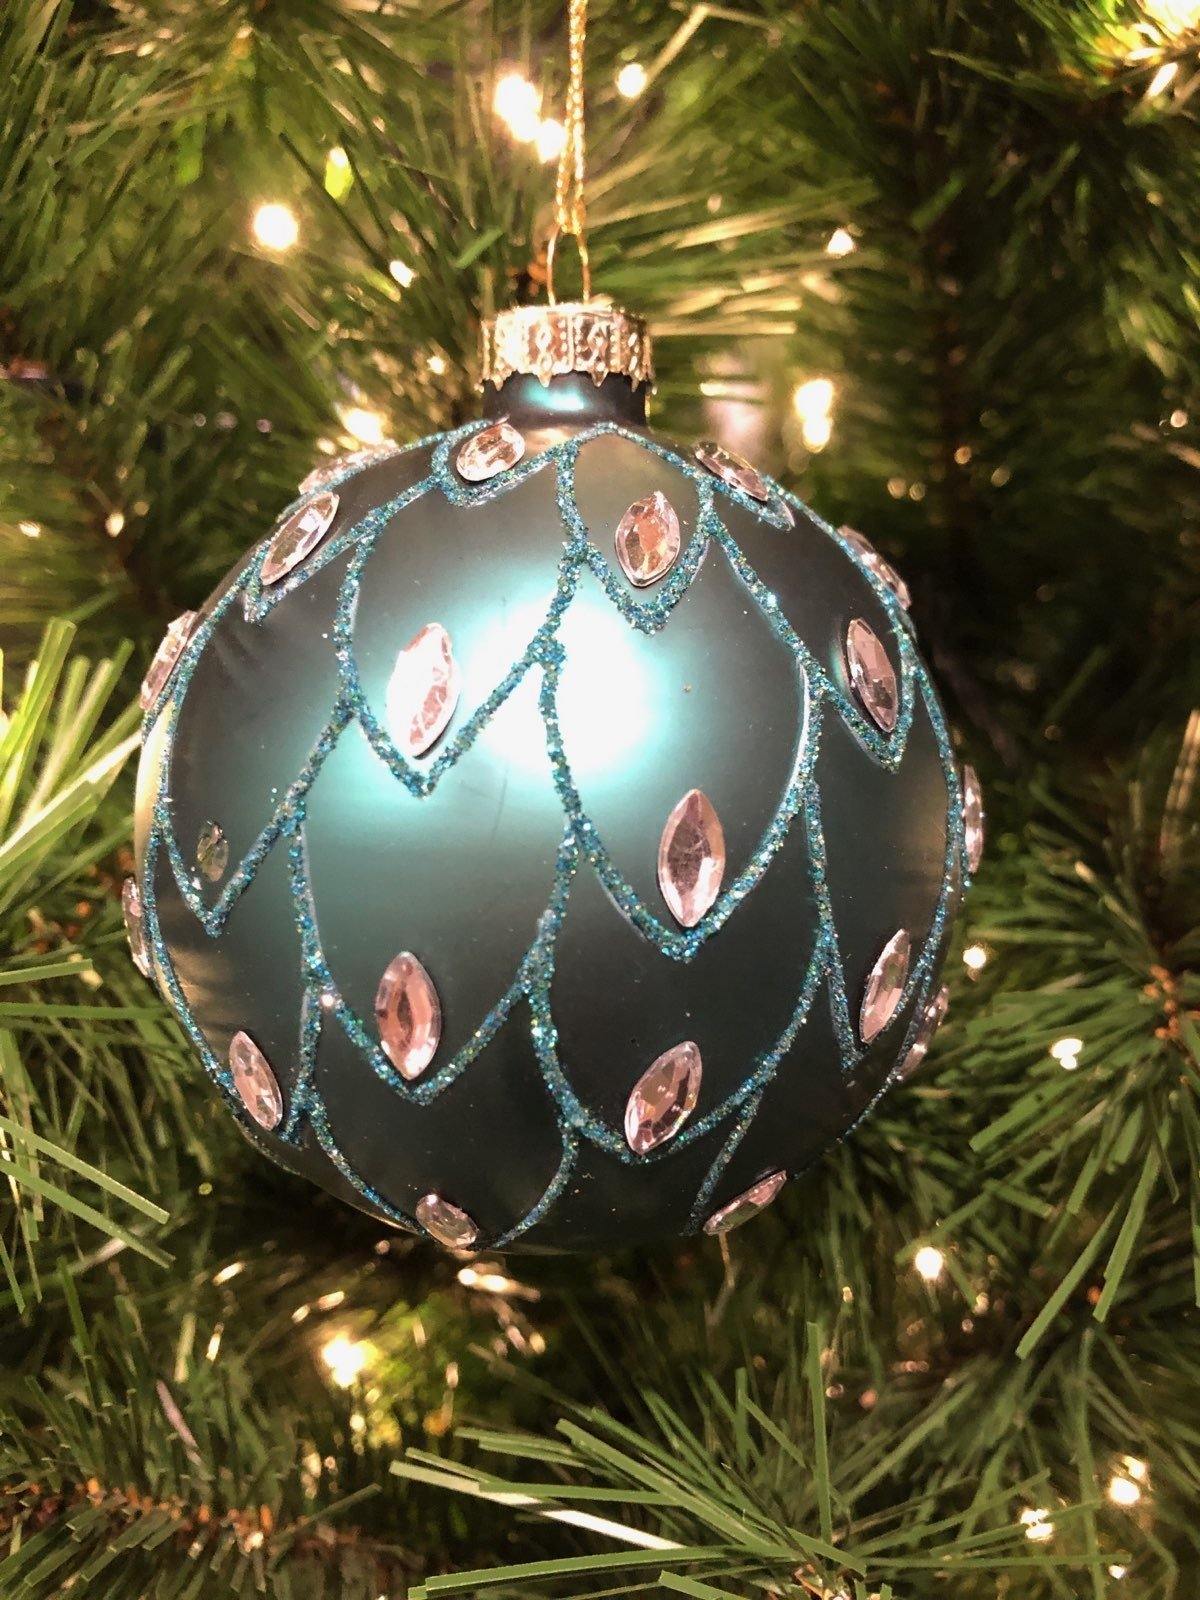 Turquoise Jewelled Ornament - My Christmas